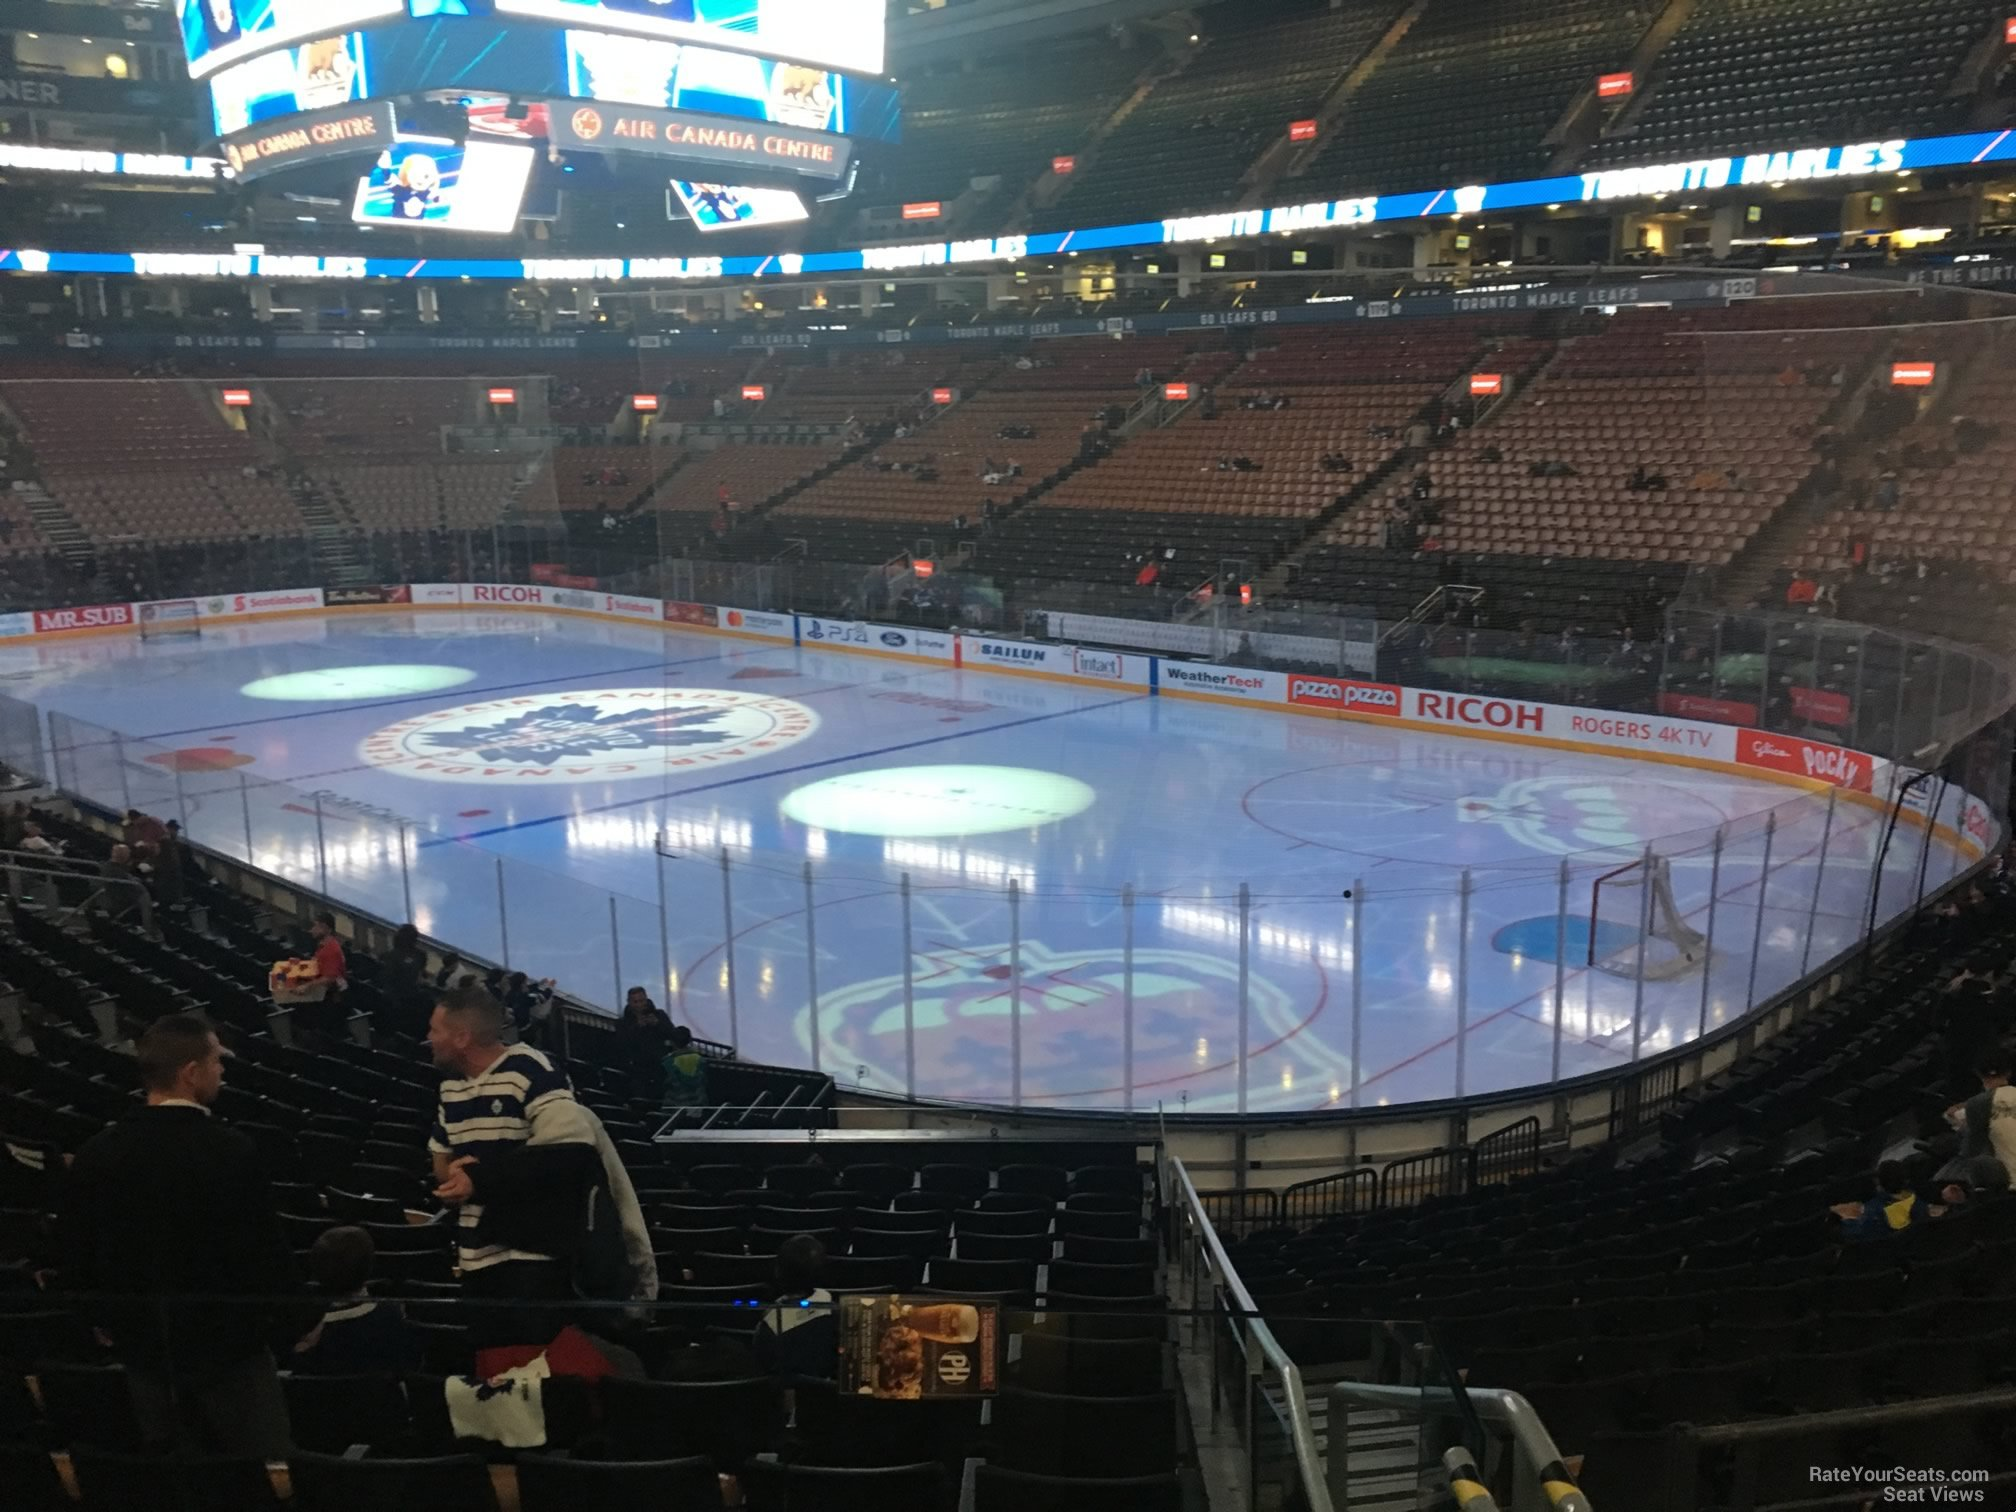 Toronto Maple Leafs Seat View for Scotiabank Arena Section 105, Row 20